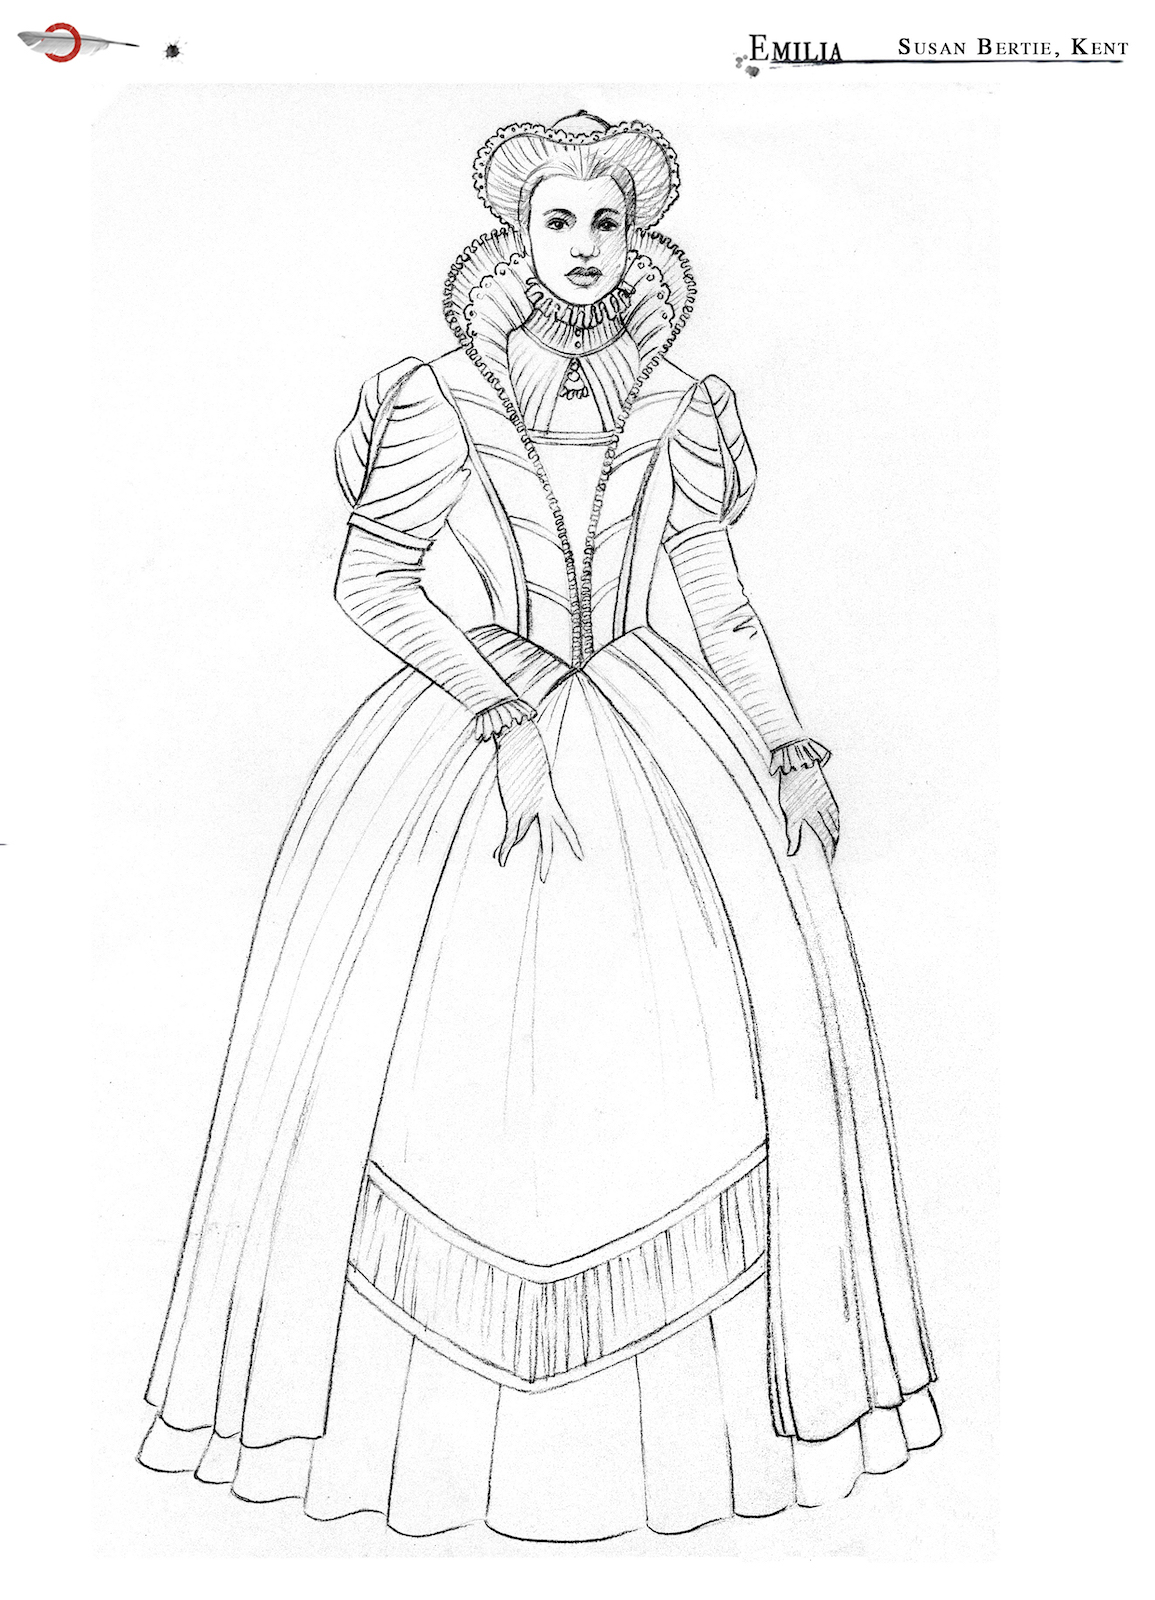 An outline illustration of a women's Elizabethan dress with ruff and elegant headwear